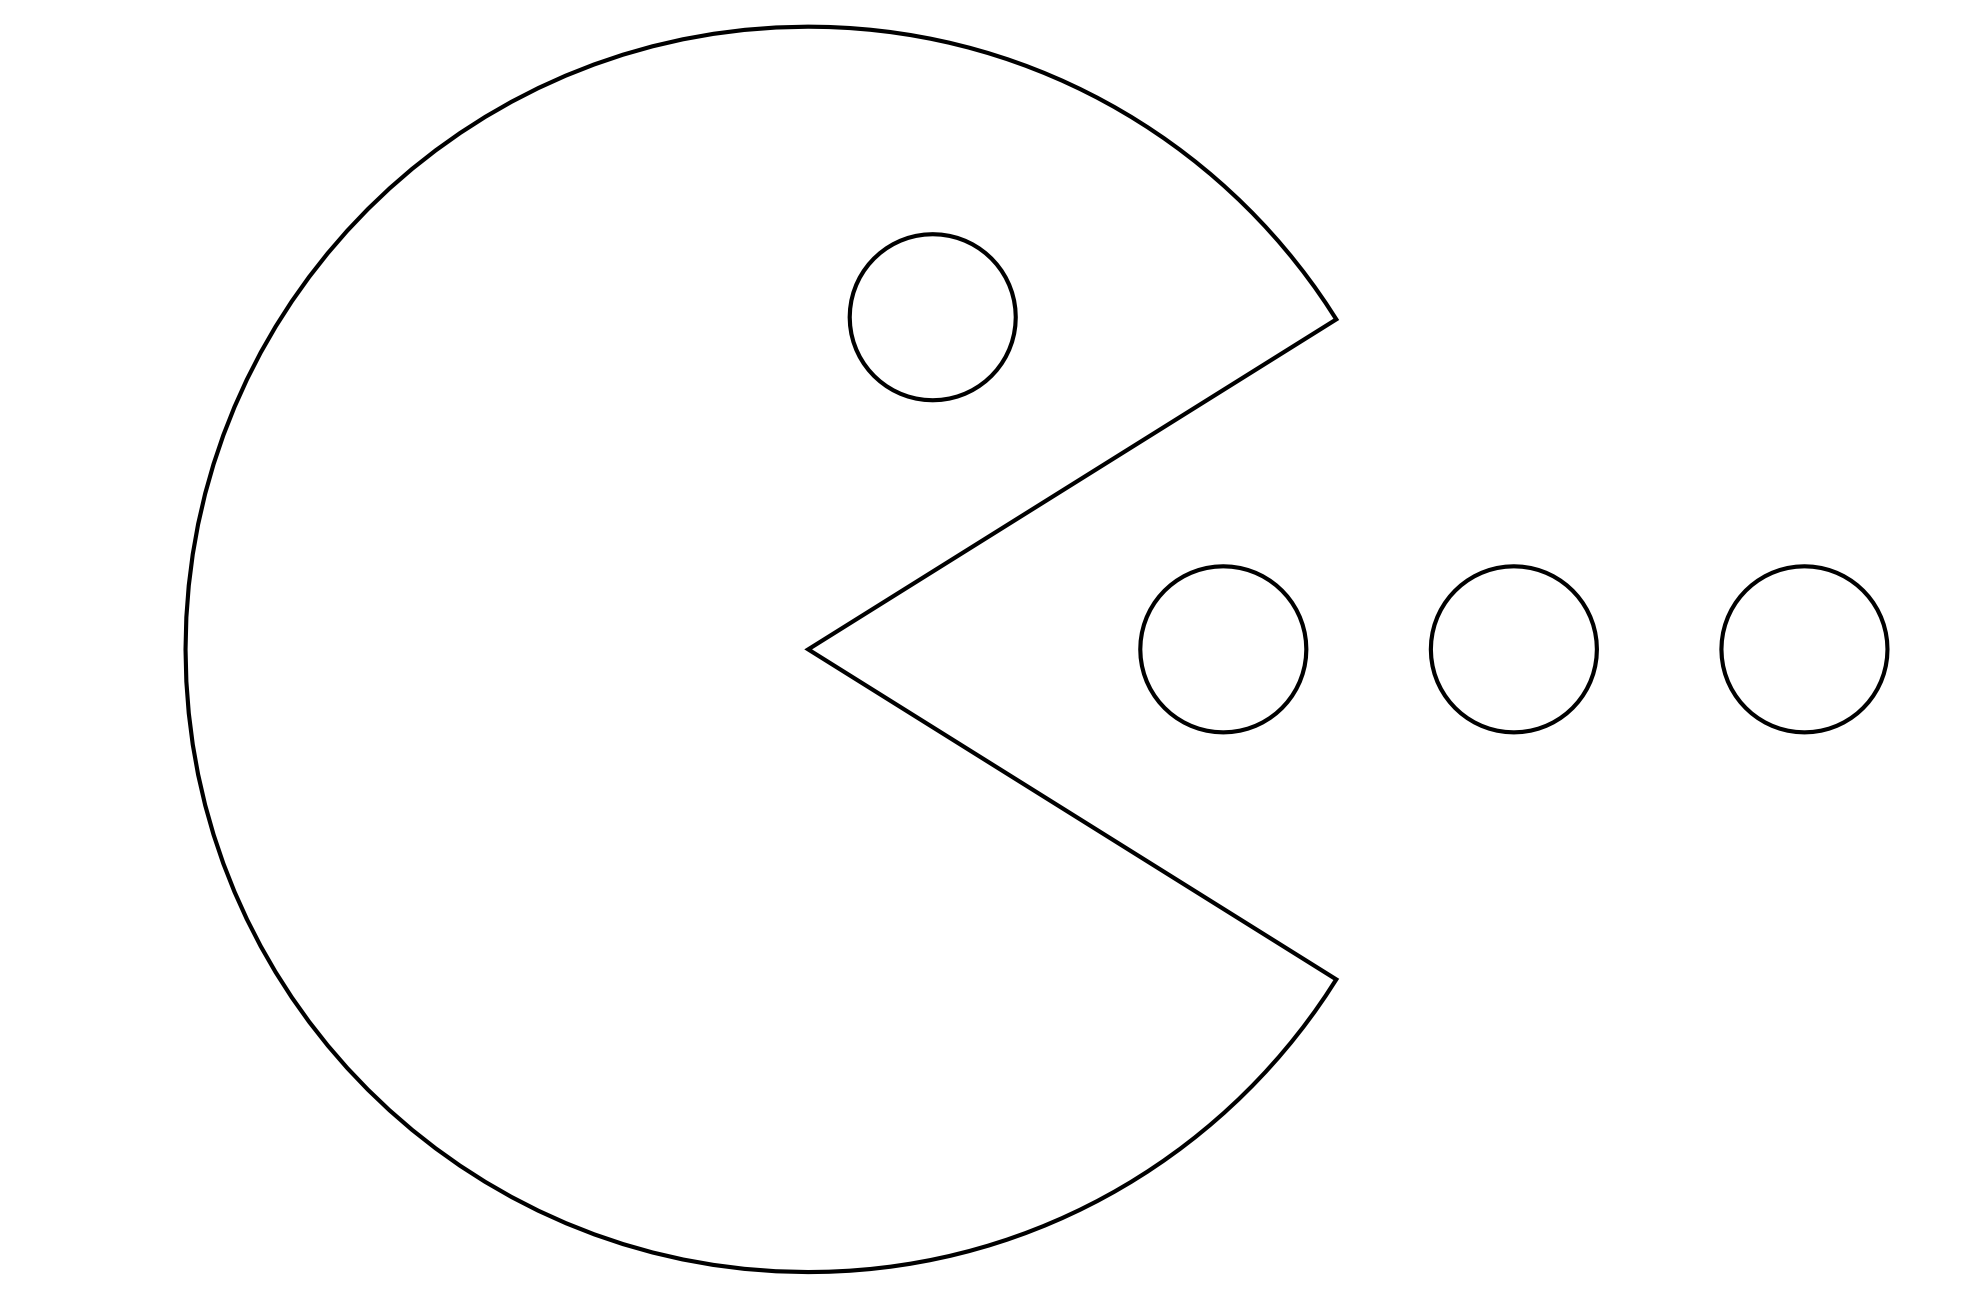 pacman printable coloring pages - photo#12